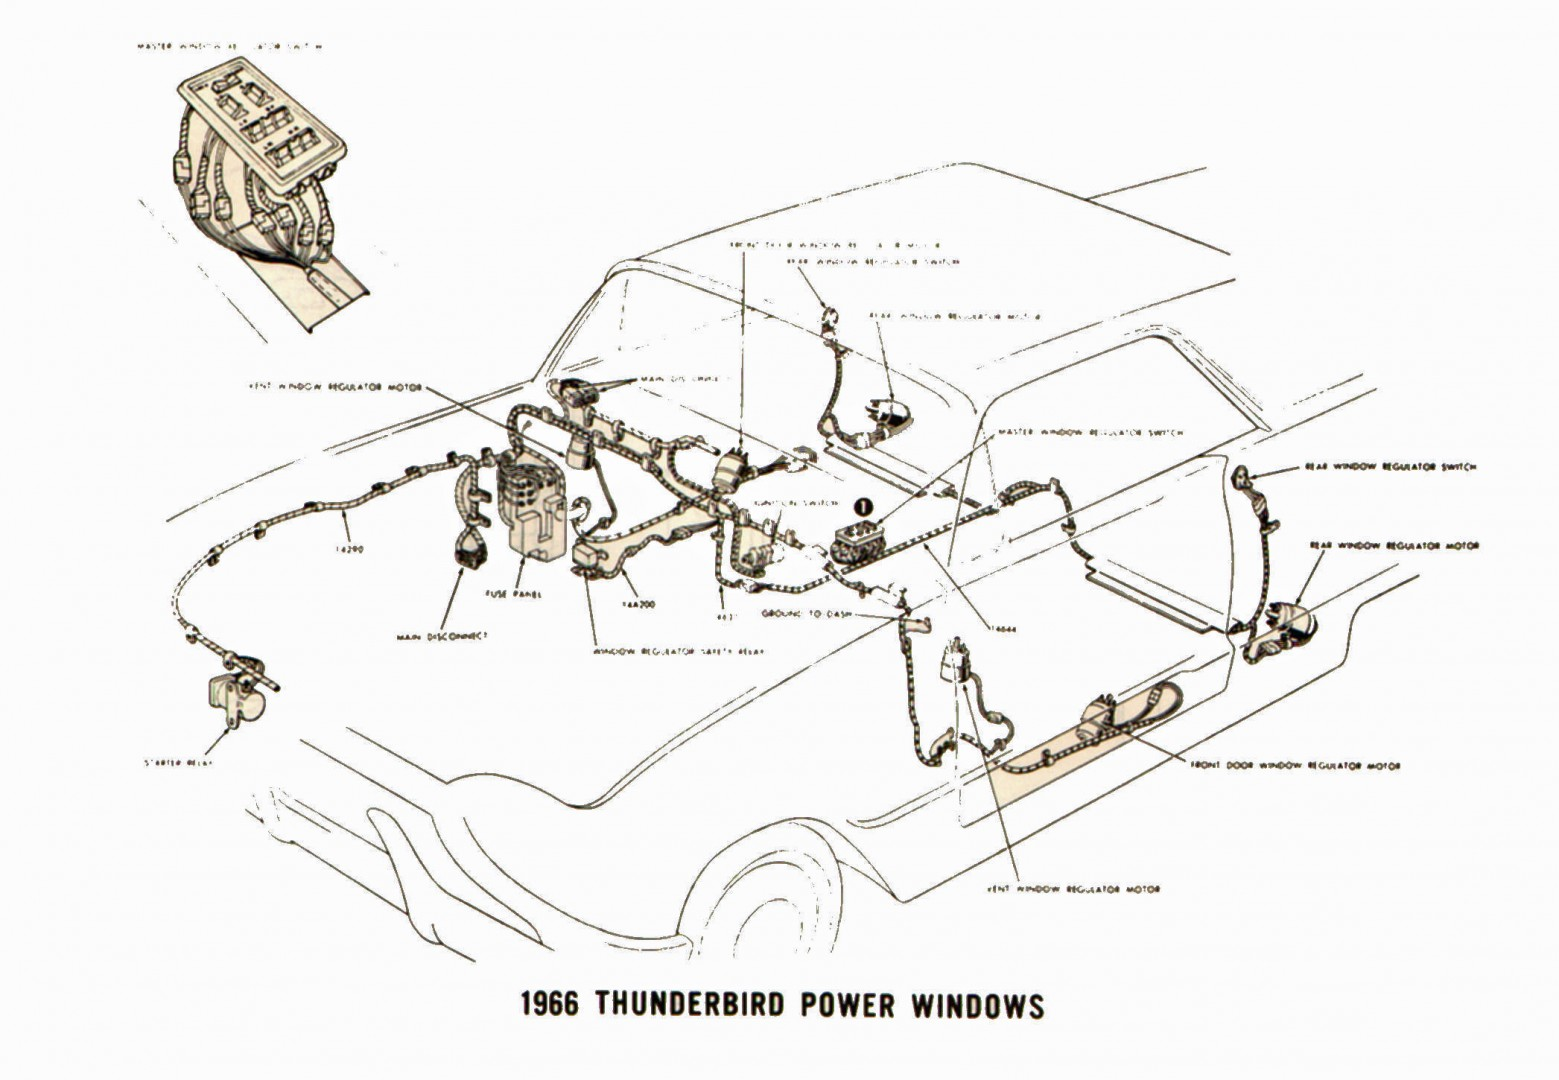 1962 Thunderbird Wiring Diagram Simple Wiring Schematics 1962 Thunderbird  Wiring Schematics